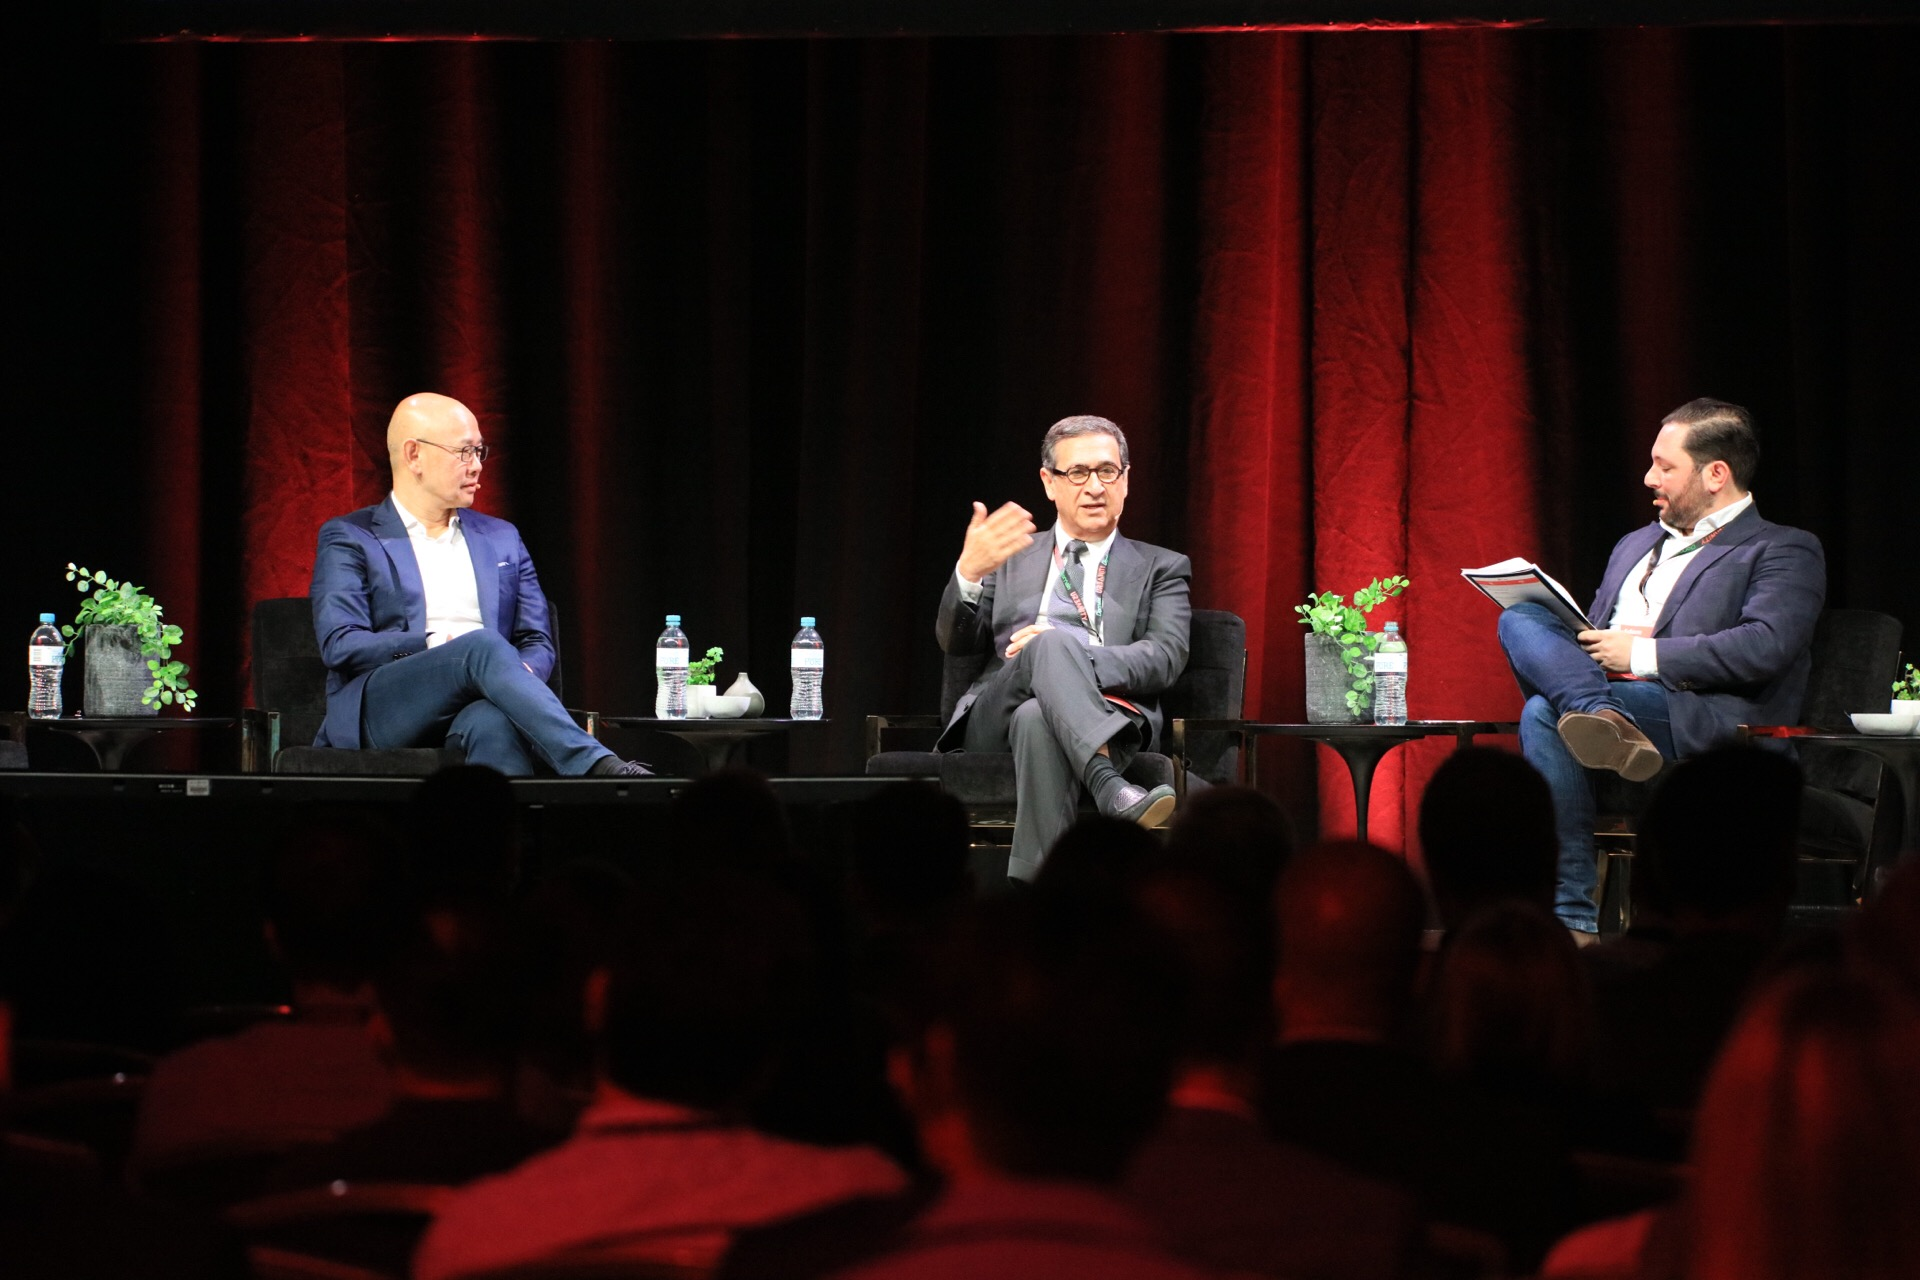 Sunland founder Soheil Abedian in conversation with Crown Group founder Iwan Sunito and The Urban Developer's Adam Di Marco at this year's Urbanity.